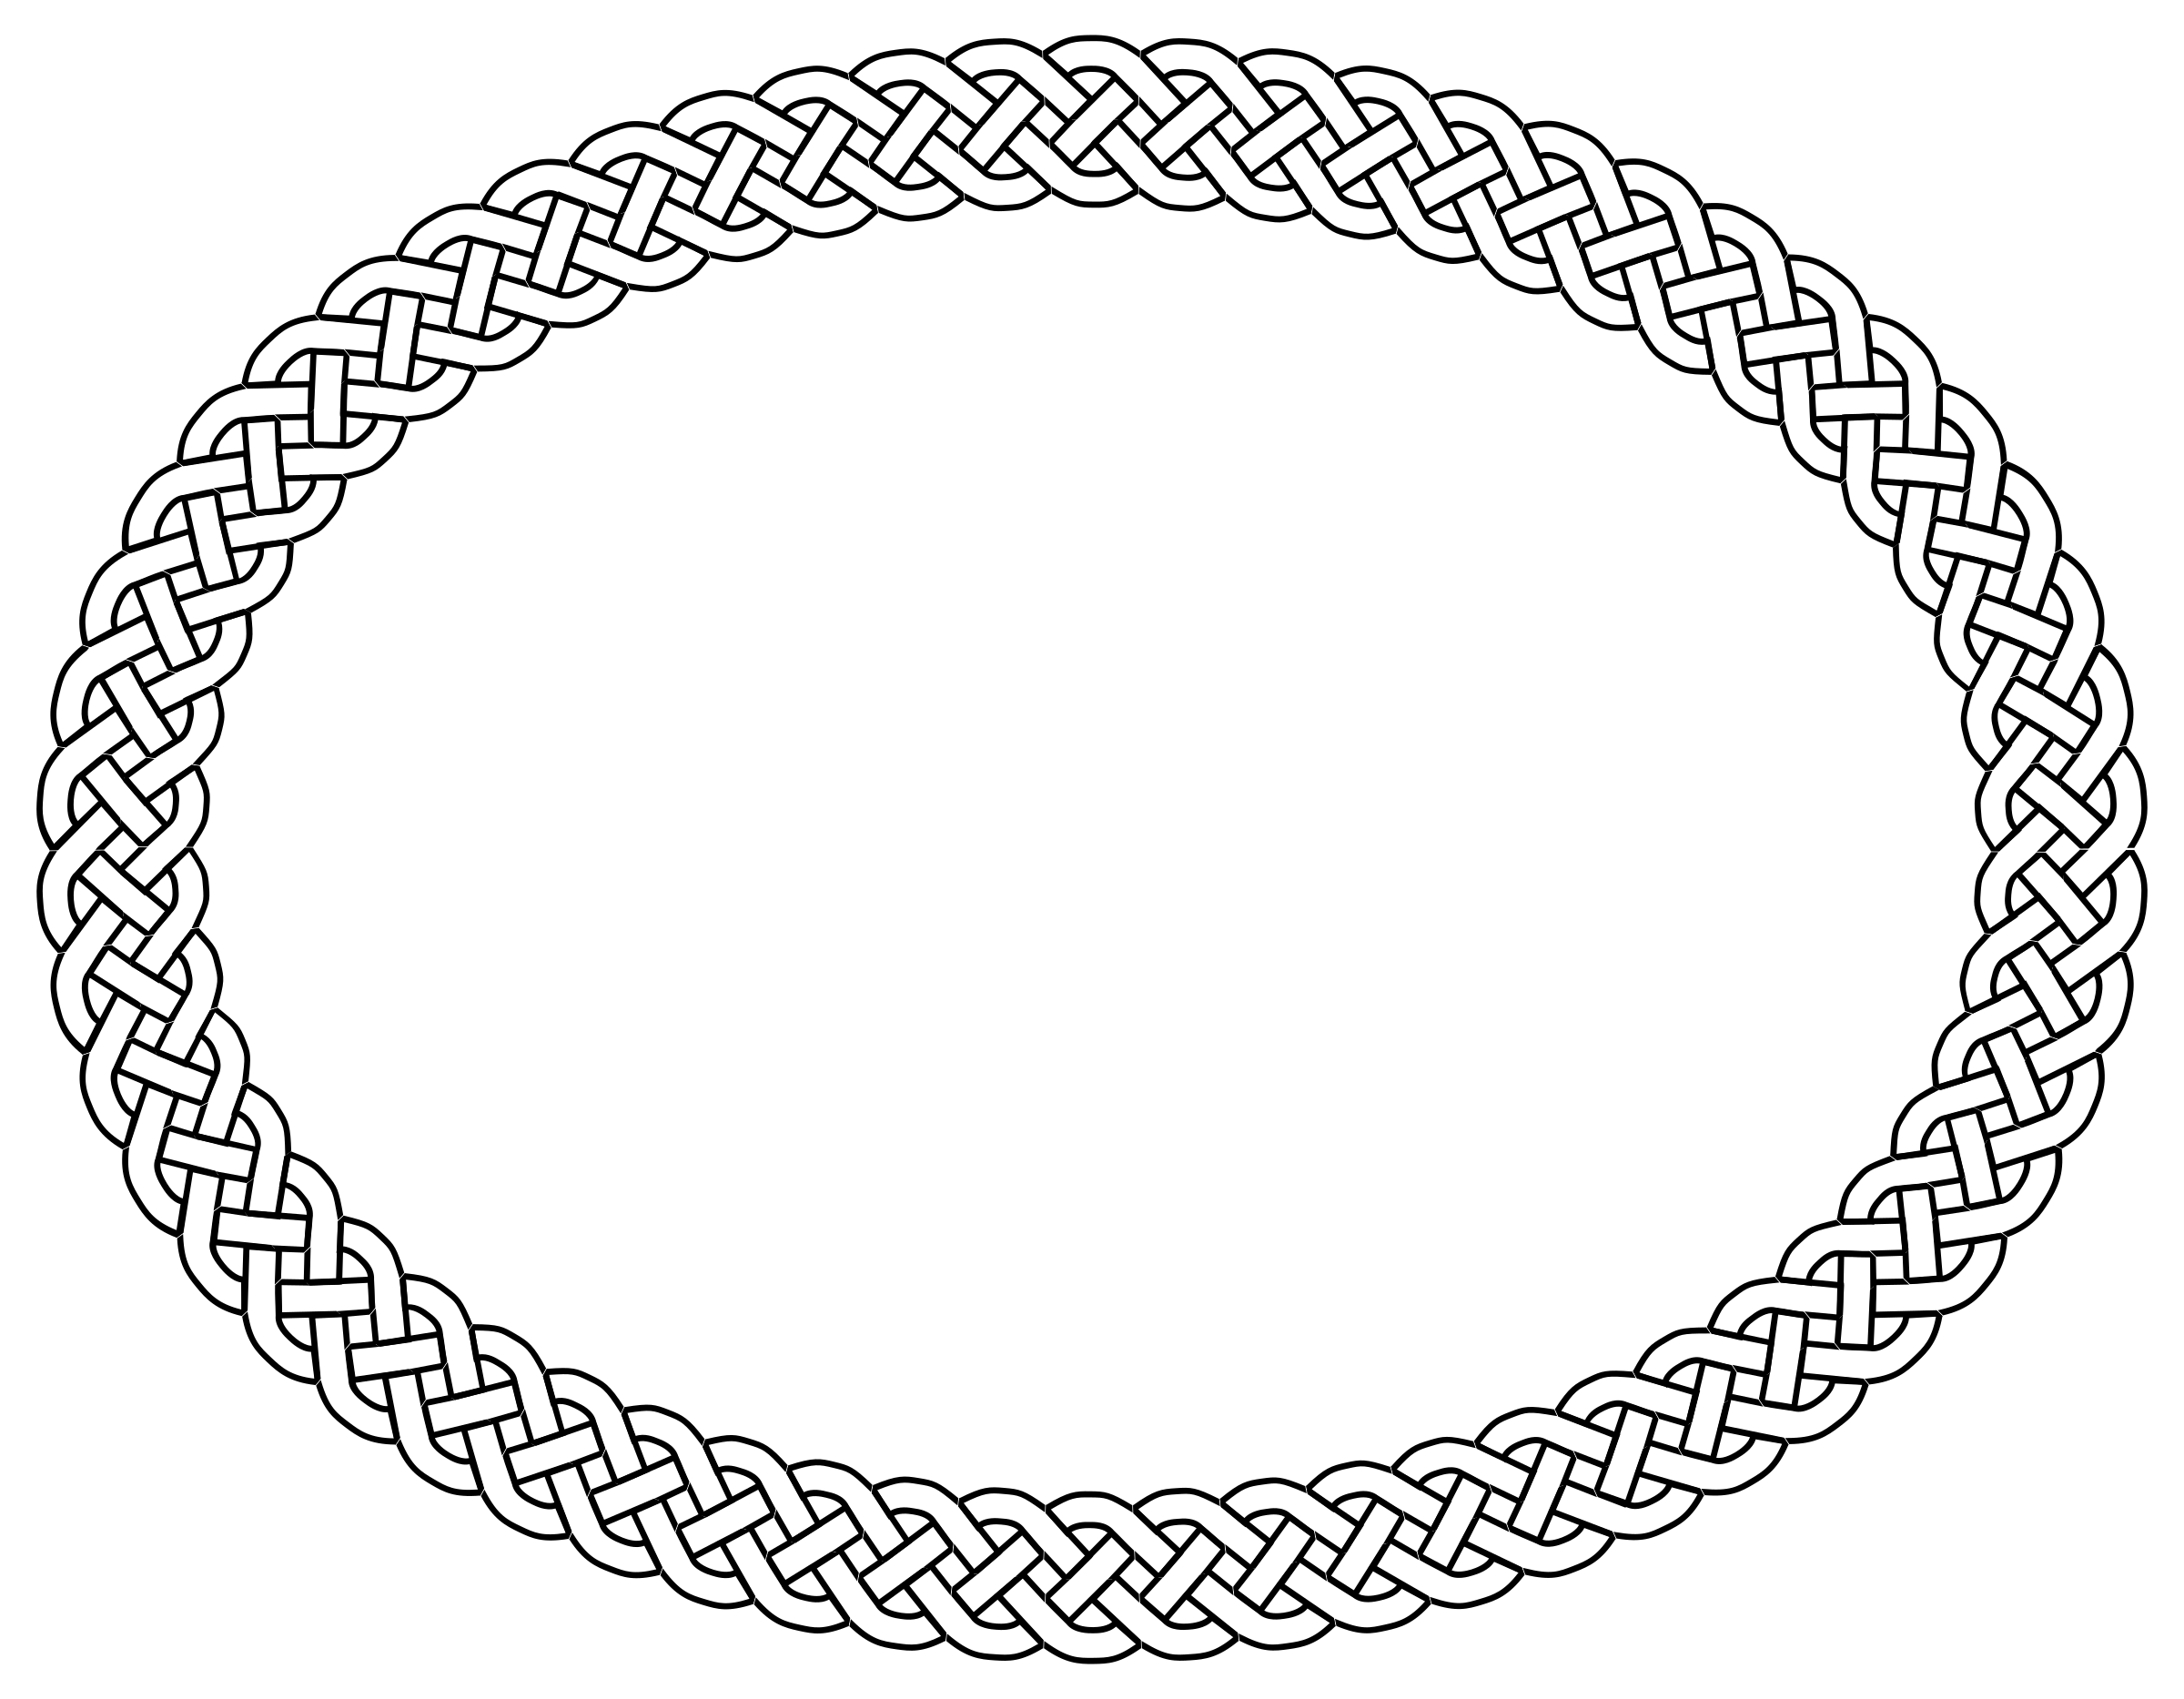 Oval border png. Black and white transparent